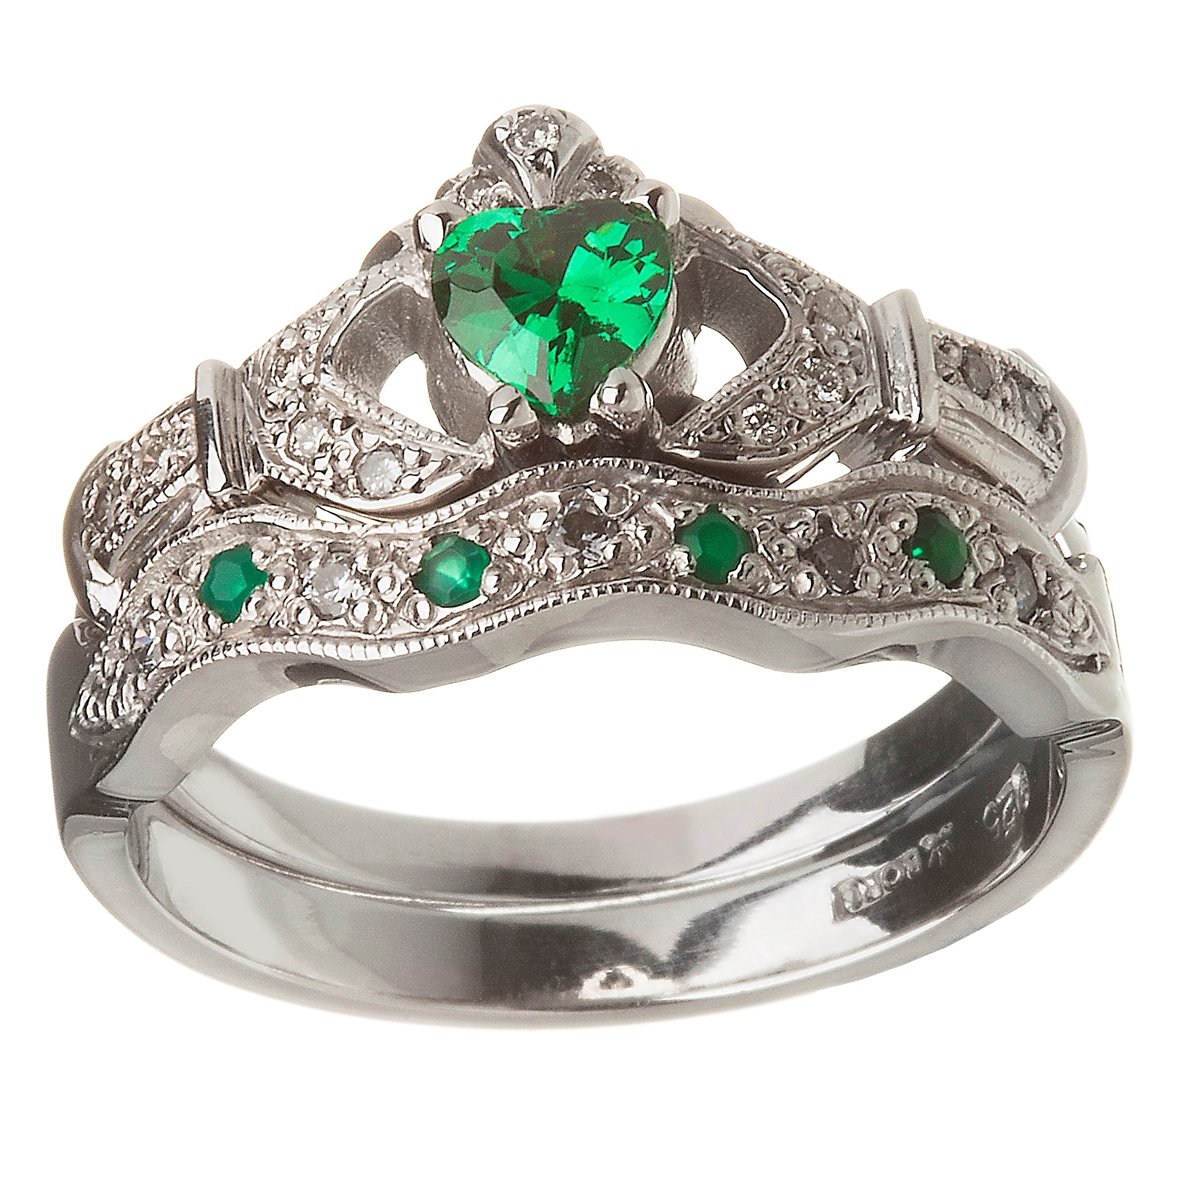 14k white gold emerald set heart claddagh ring wedding ring set - Claddagh Wedding Rings